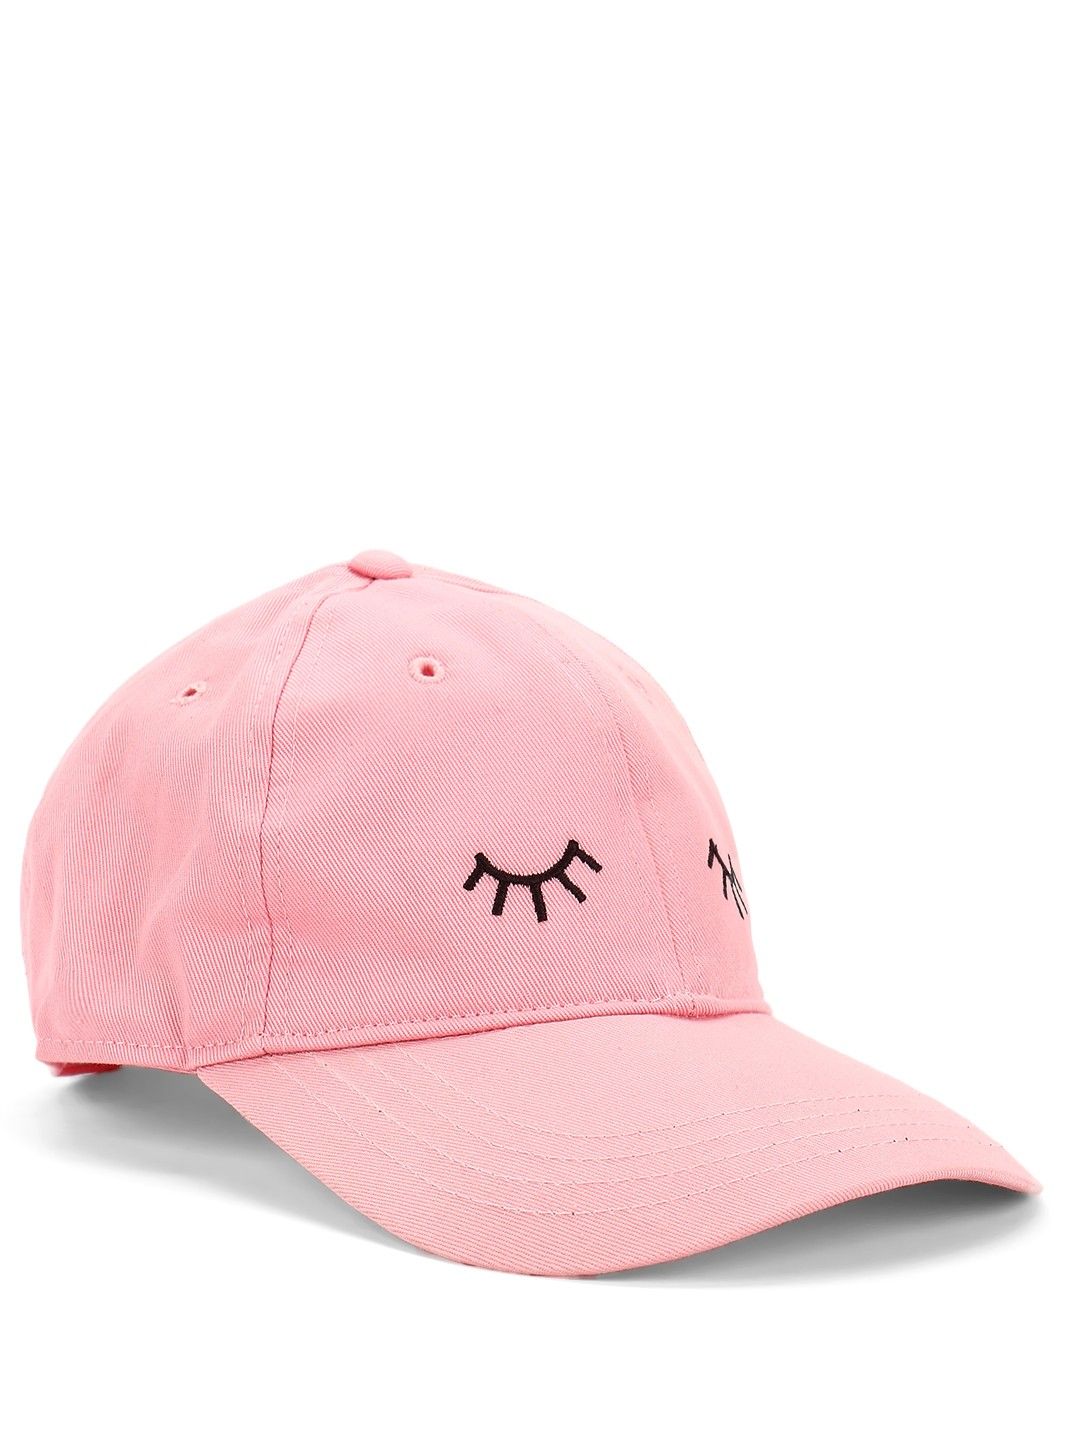 Lazy Panda Pink Wink Embroidered Cap 1